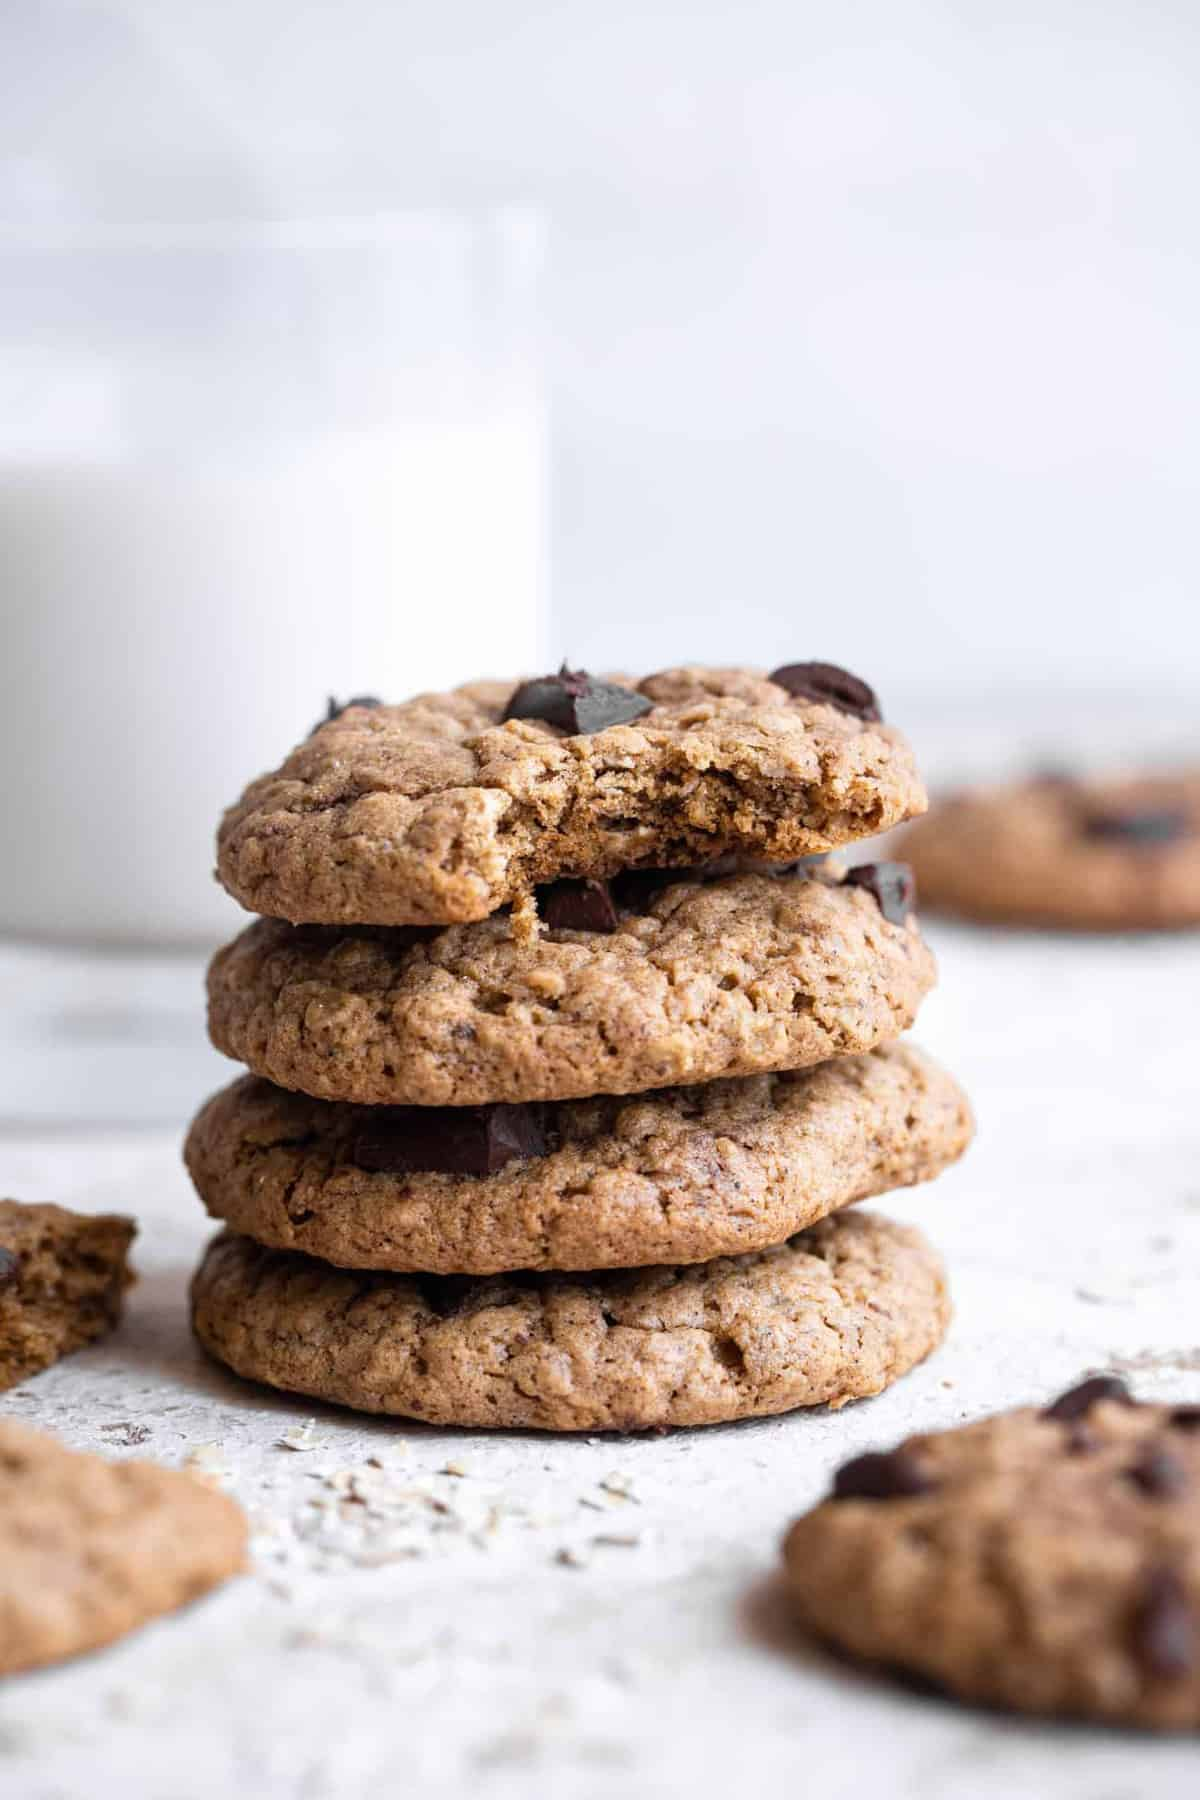 A stack of oatmeal butter cookies on a table